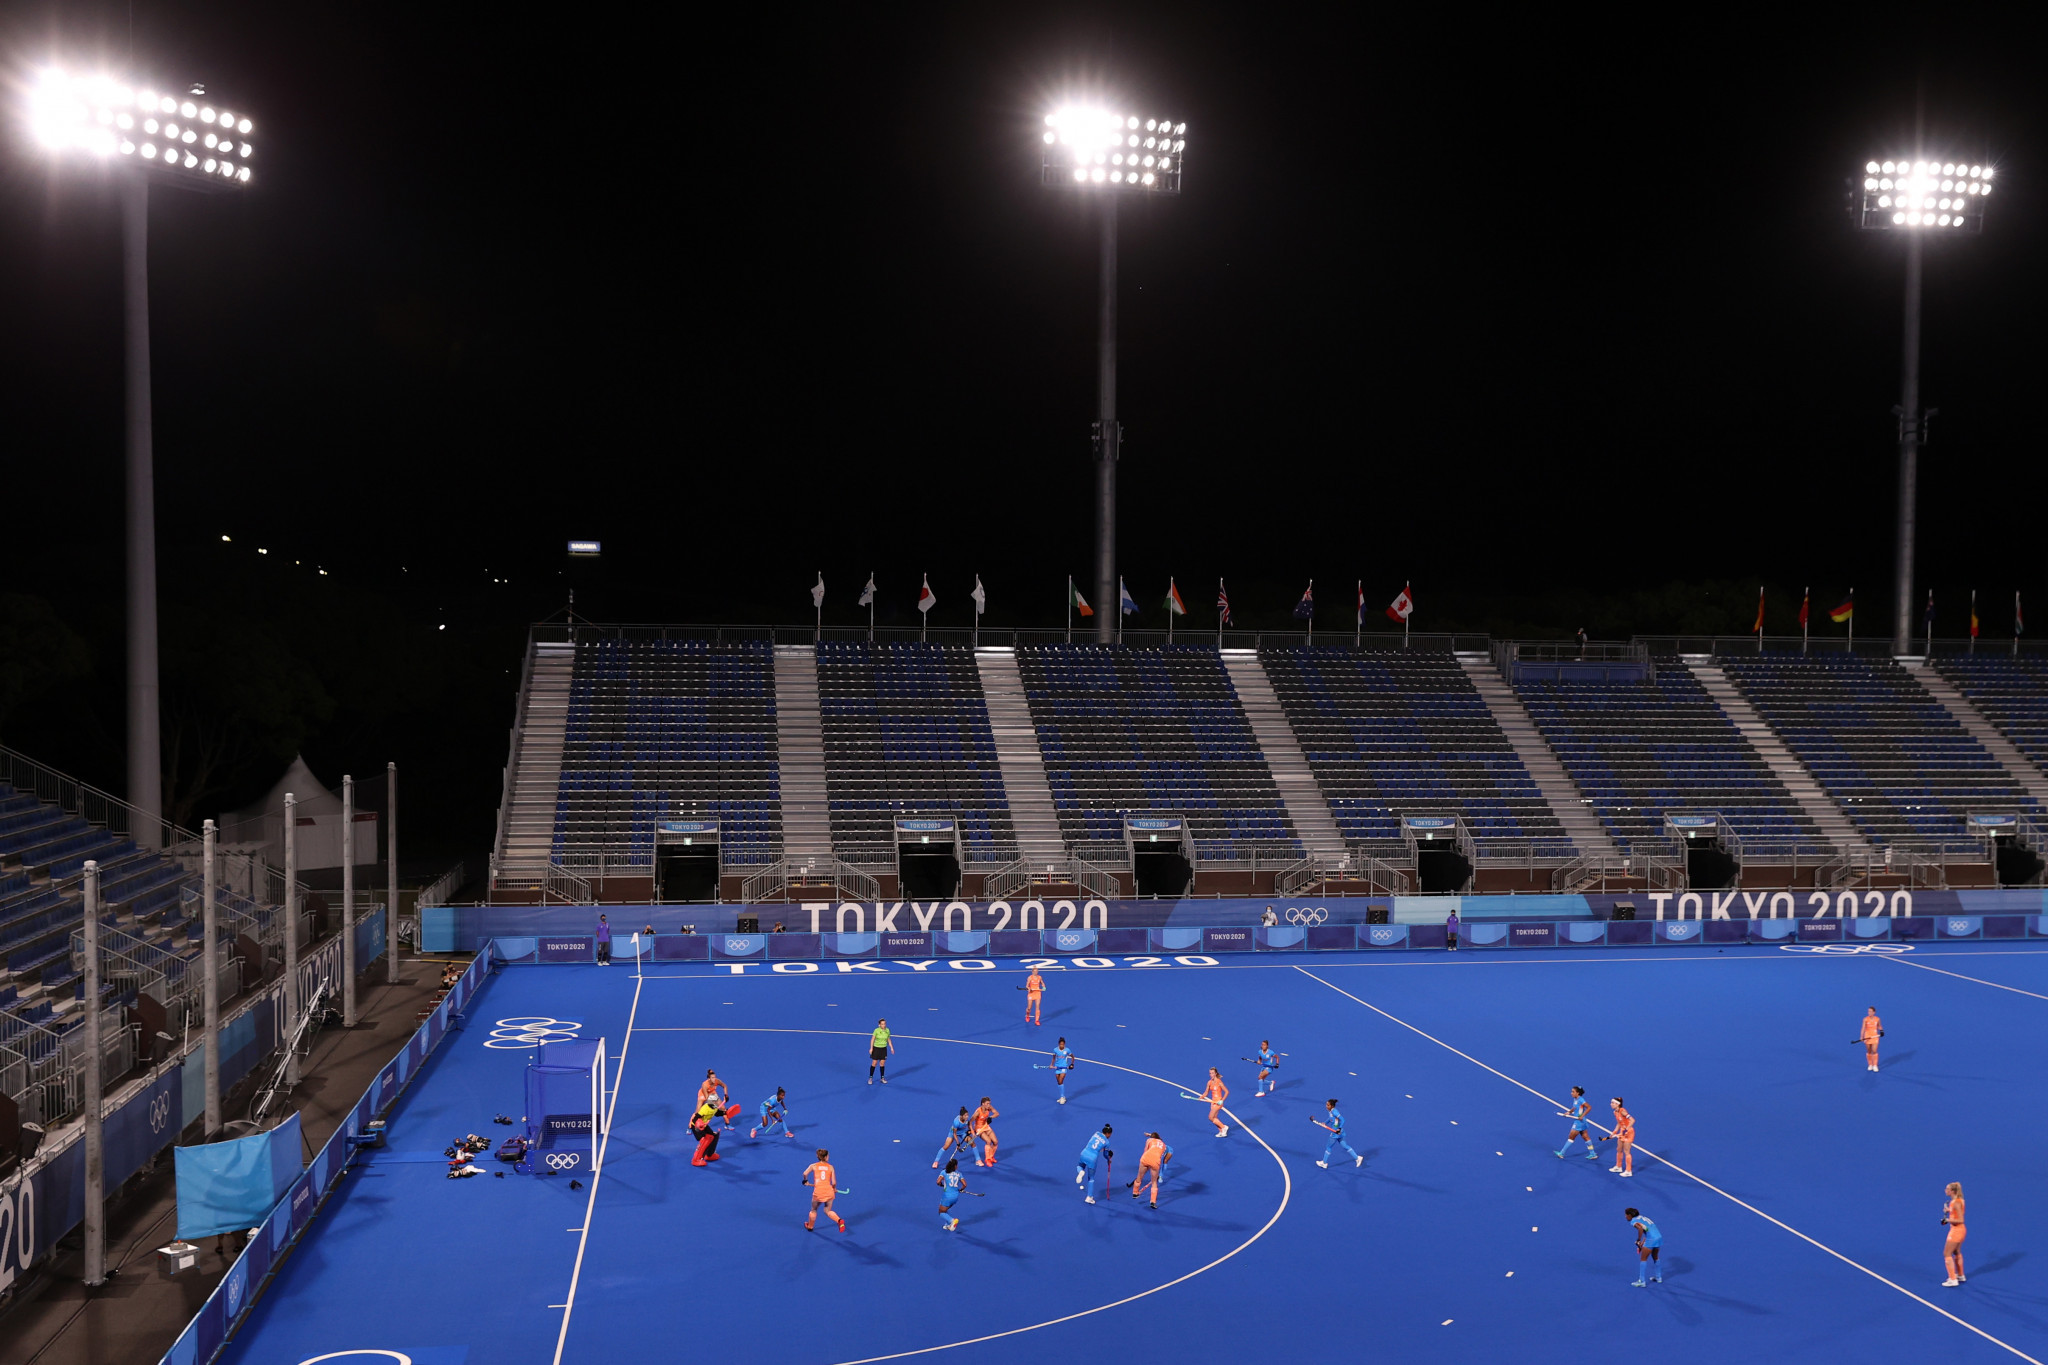 The Netherlands and India battle it out in the women's preliminary pool at a near-empty Oi Hockey Stadium which was built for Tokyo 2020 ©Getty Images